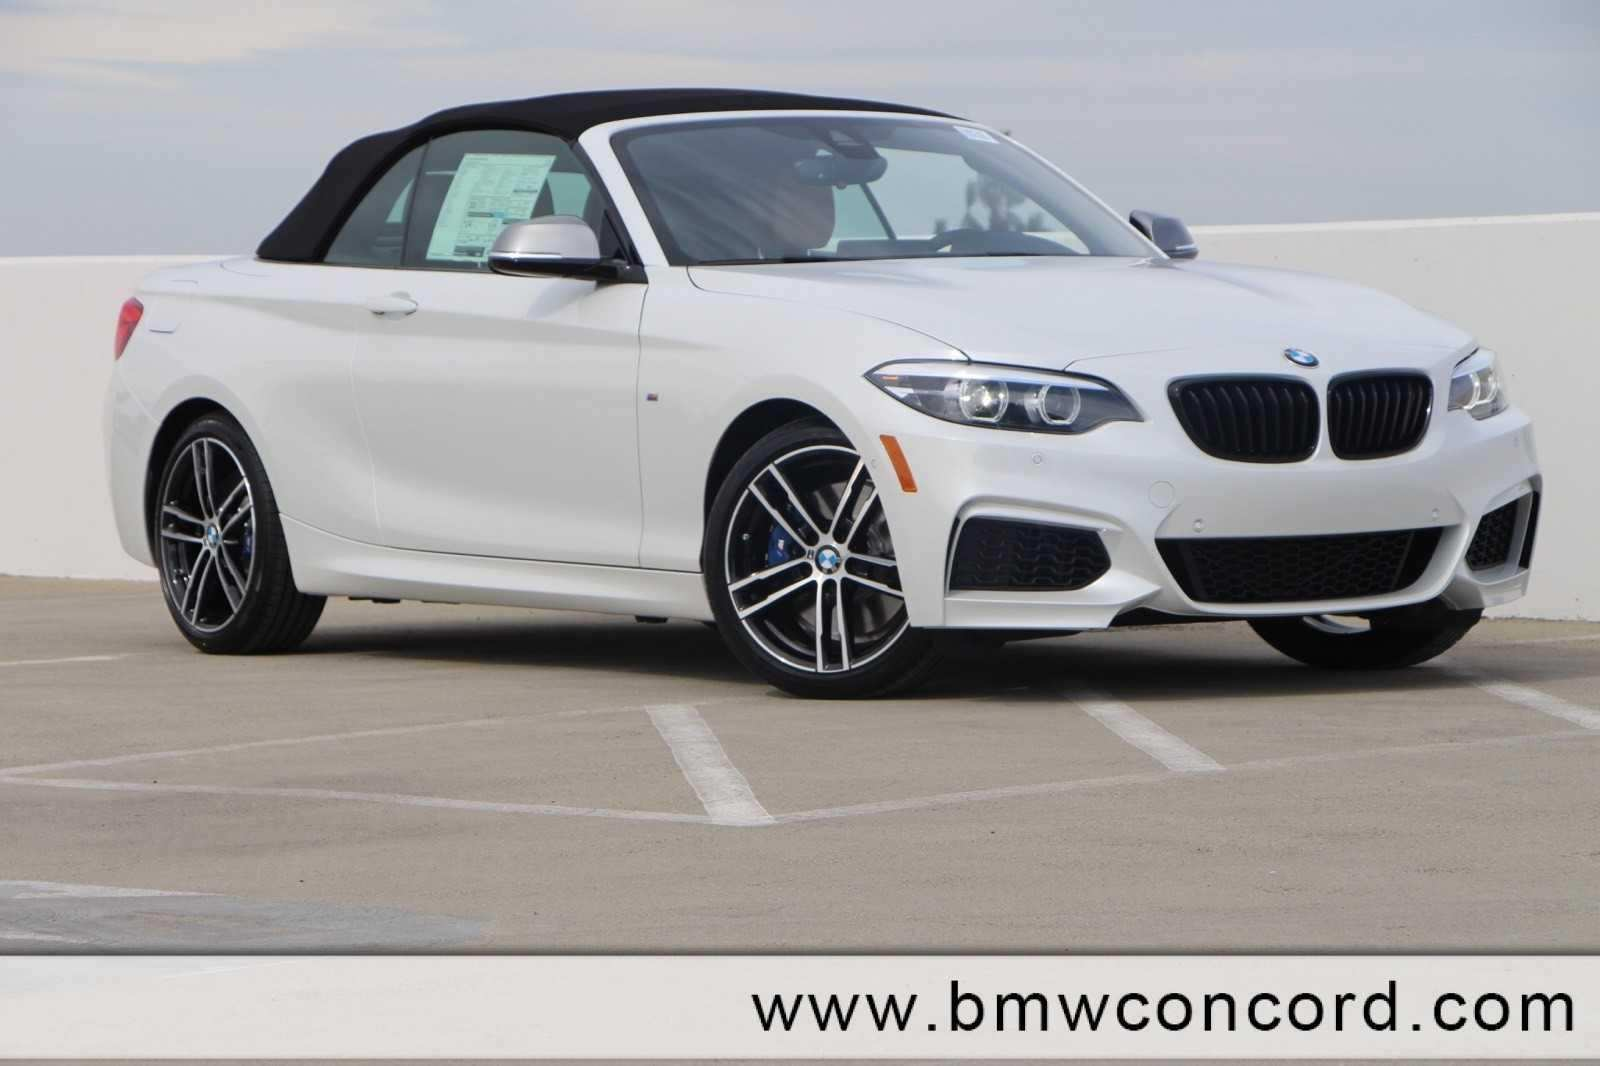 45 New 2019 Bmw 2 Series Convertible Overview by 2019 Bmw 2 Series Convertible